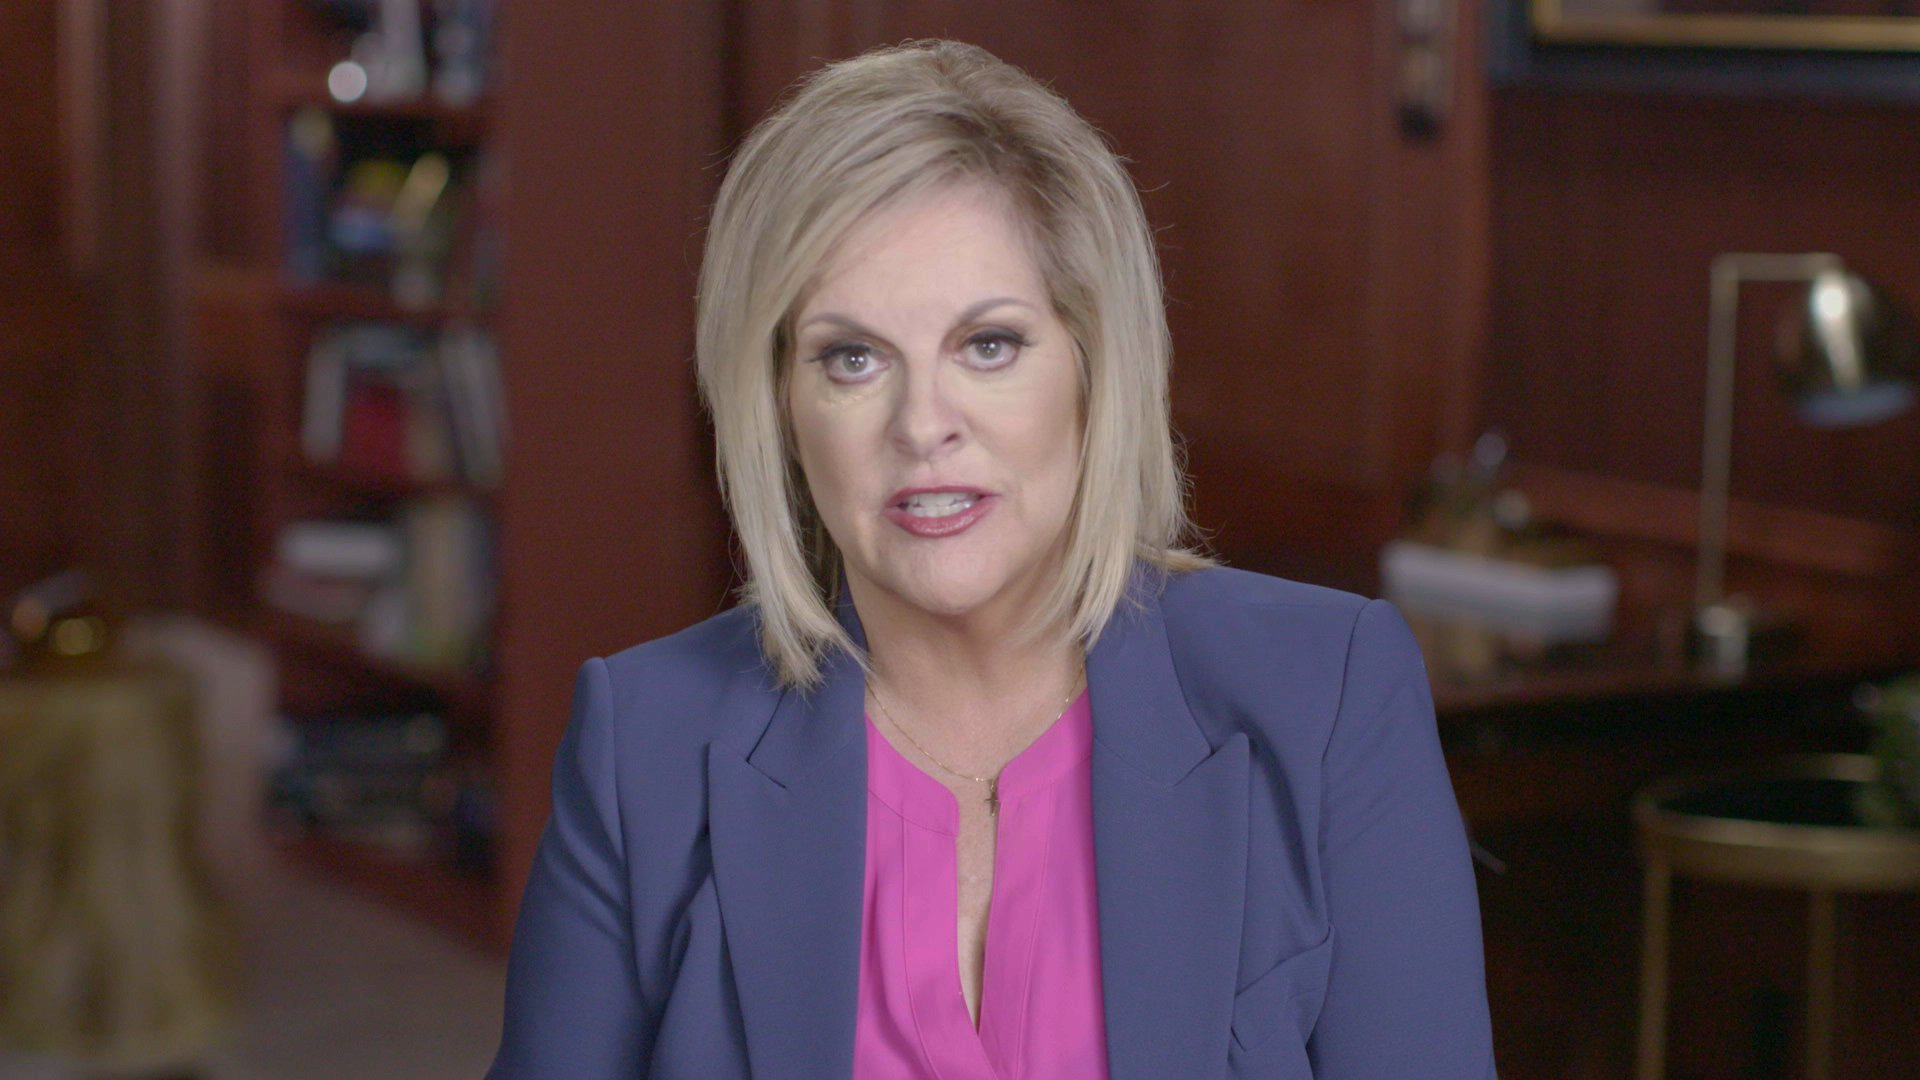 Injustice With Nancy Grace Bonus: Nancy Grace Says Sometimes The Smallest Details Crack A Case 'Wide Open'